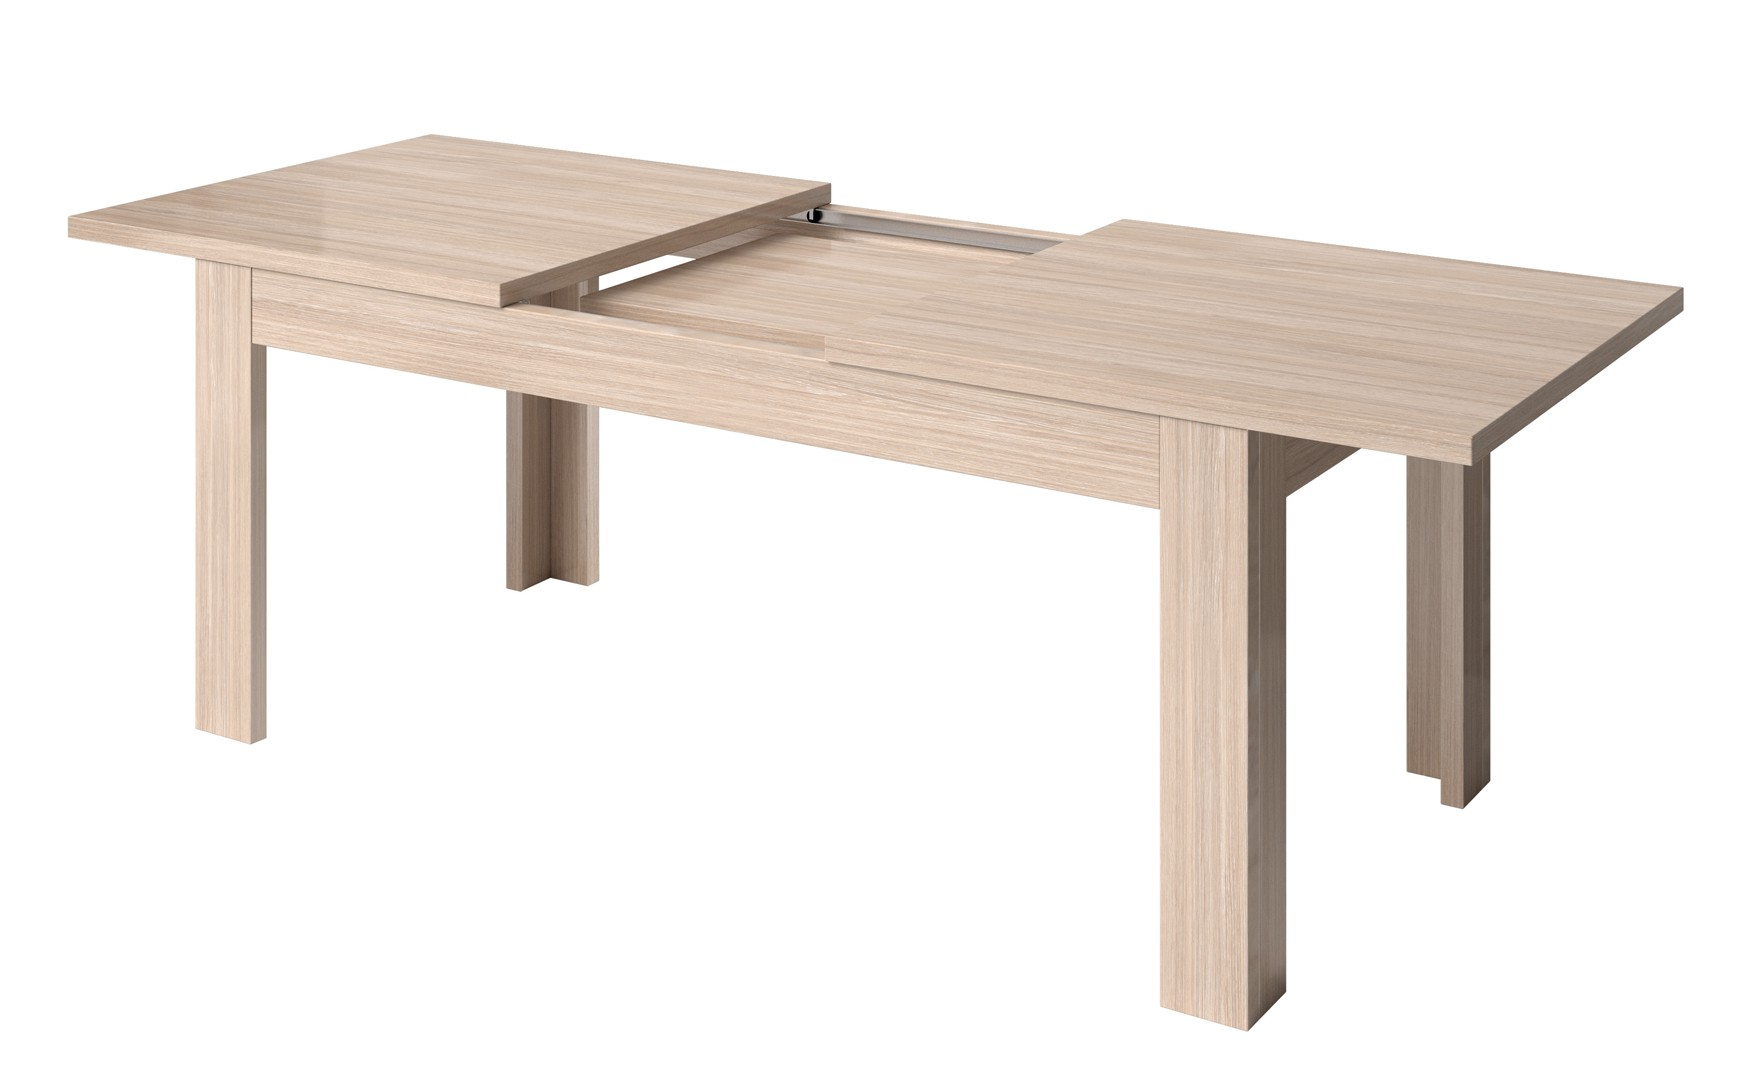 Table à manger extensible : Comment choisir sa table à manger ?